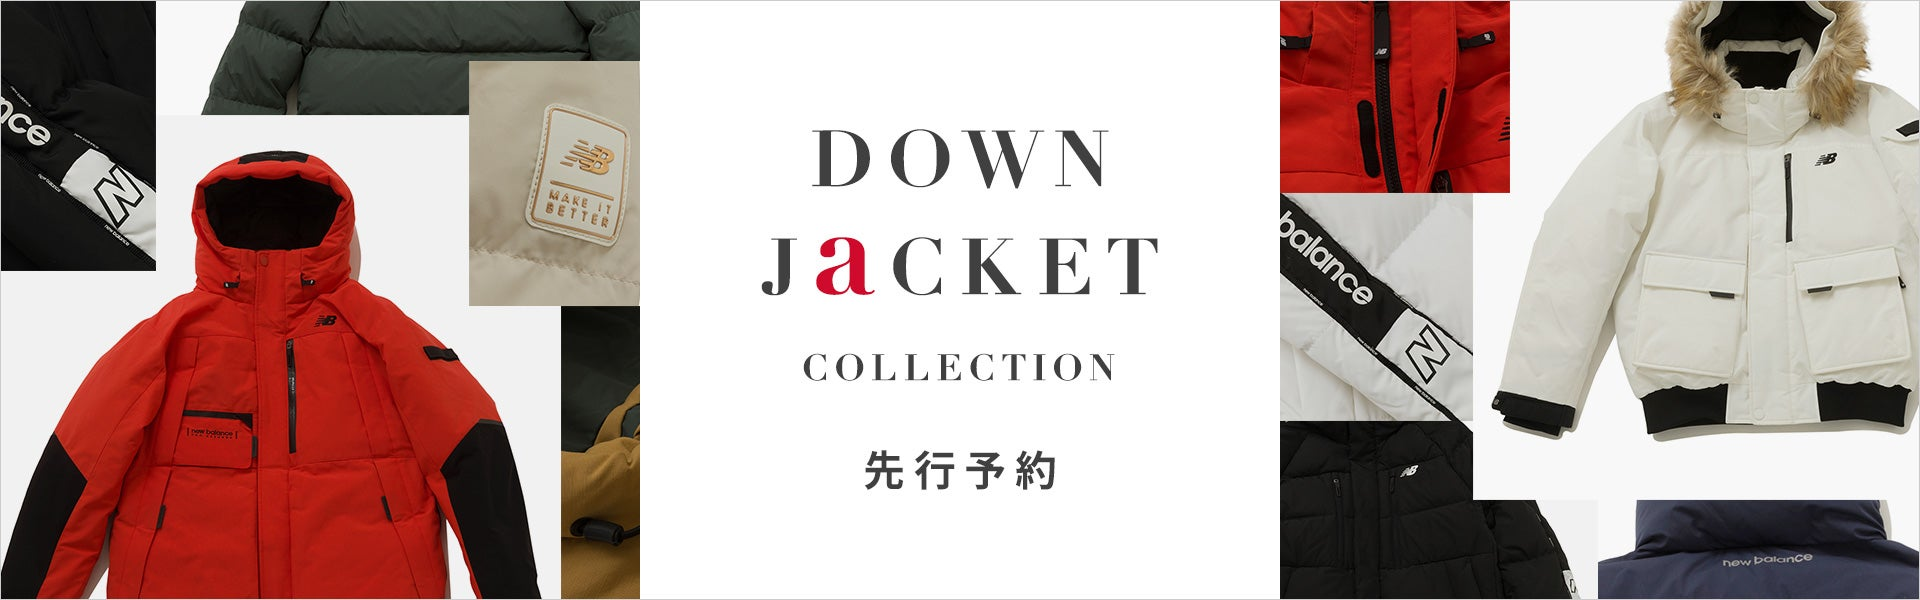 DOWN JACKET COLLECTION 先行予約